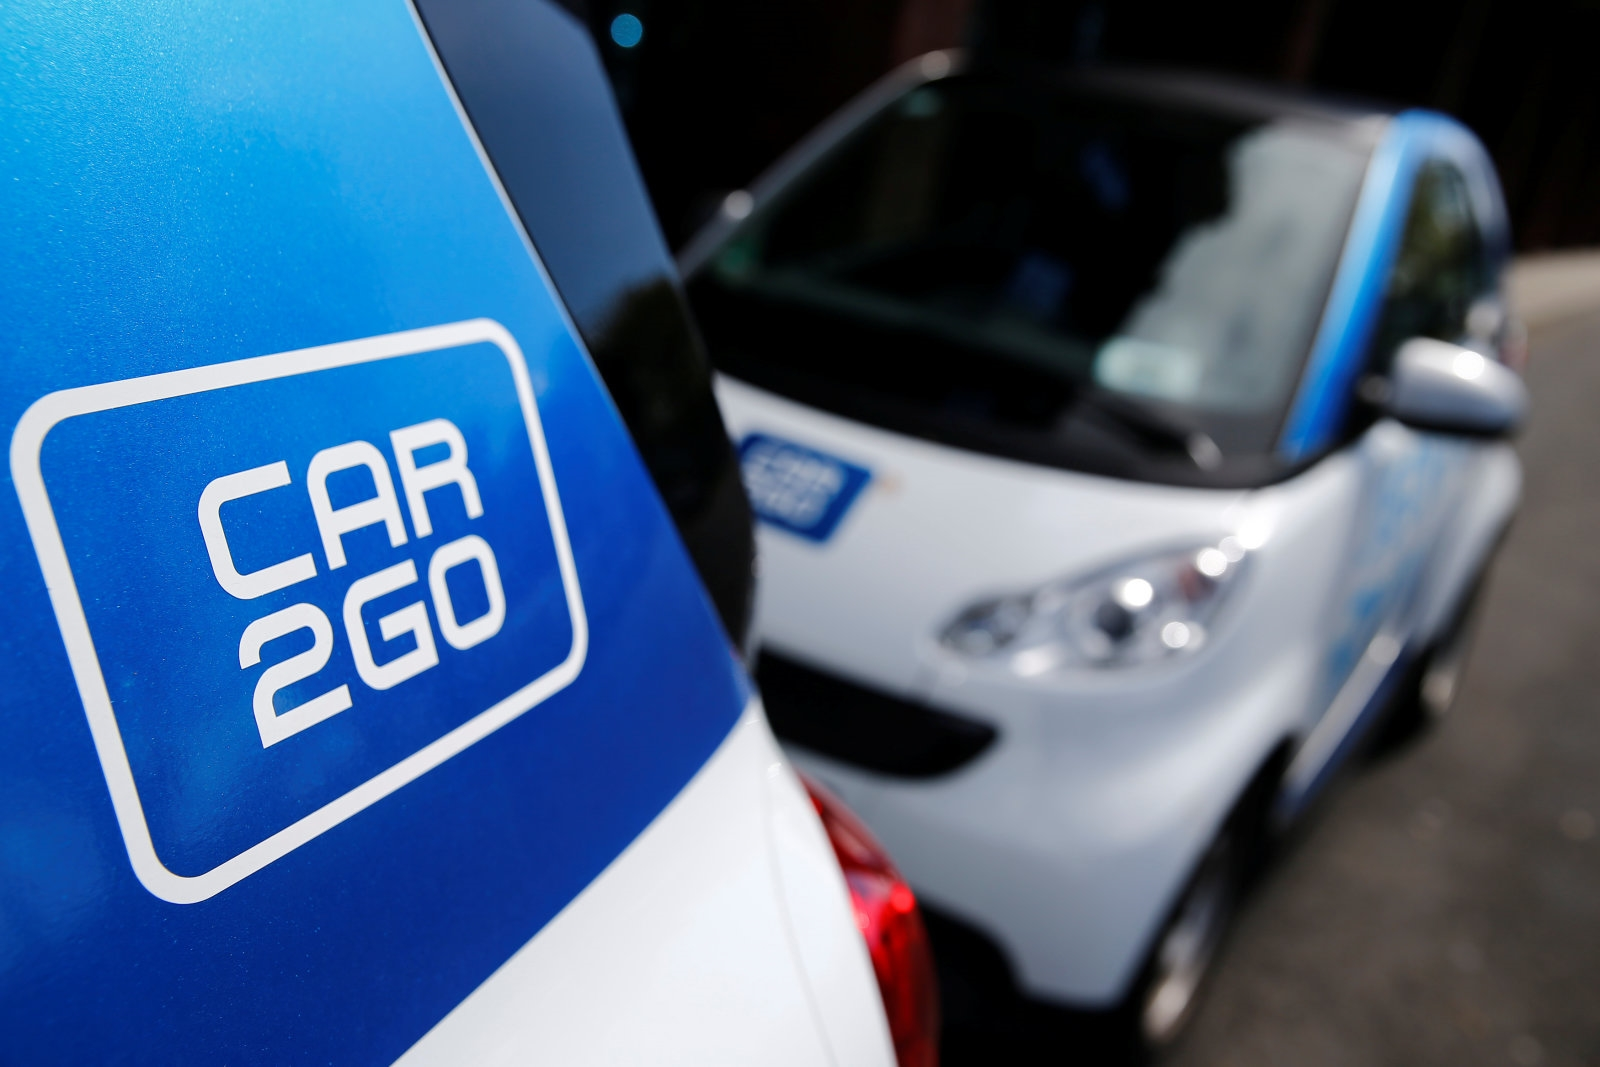 Car2Go's carsharing service expands to Chicago starting July 25th | DeviceDaily.com